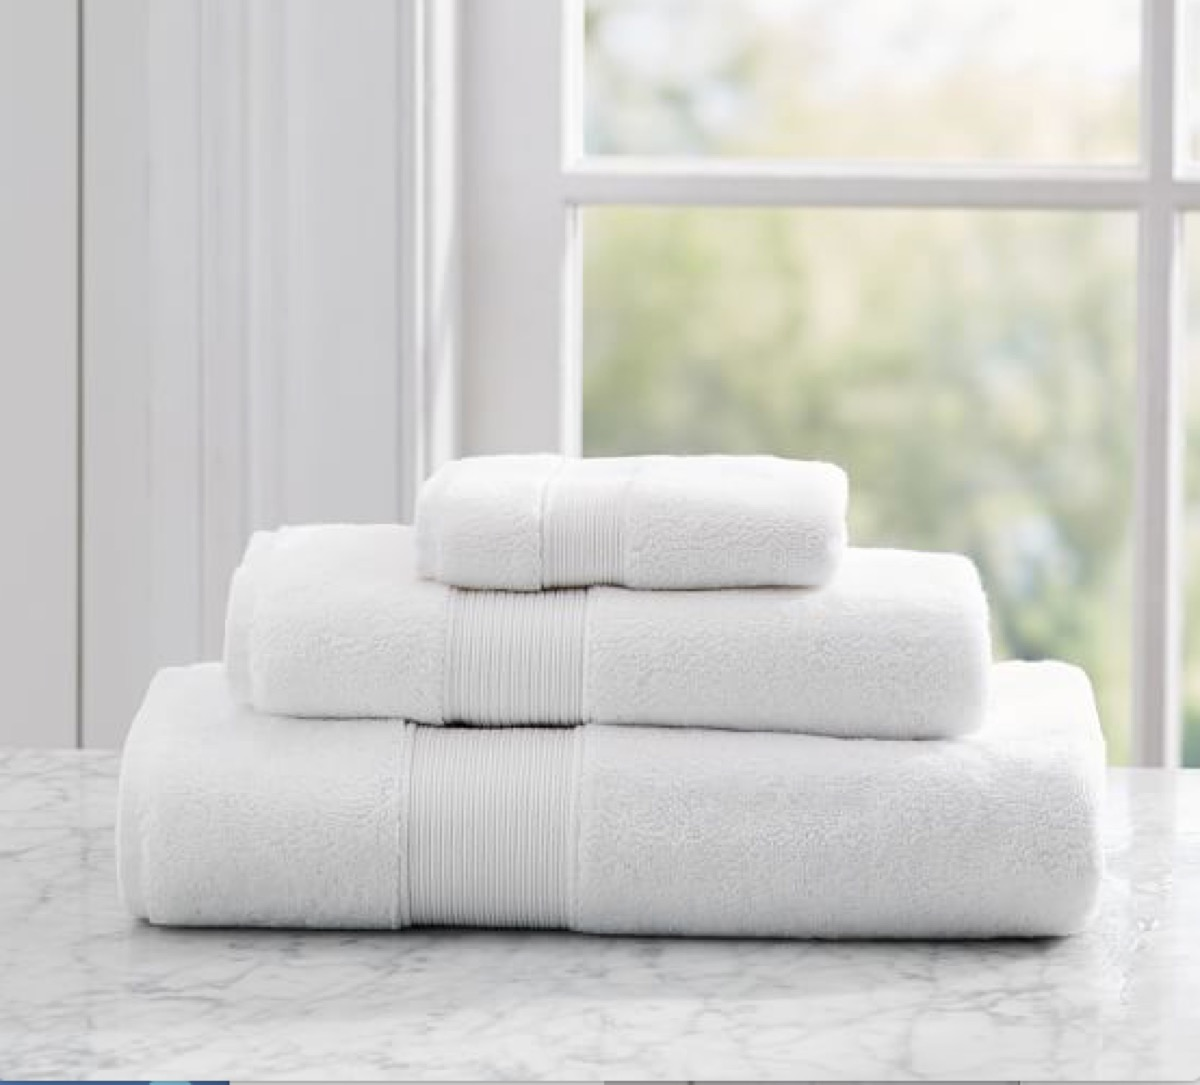 Pottery Barn White Towels buy after holidays